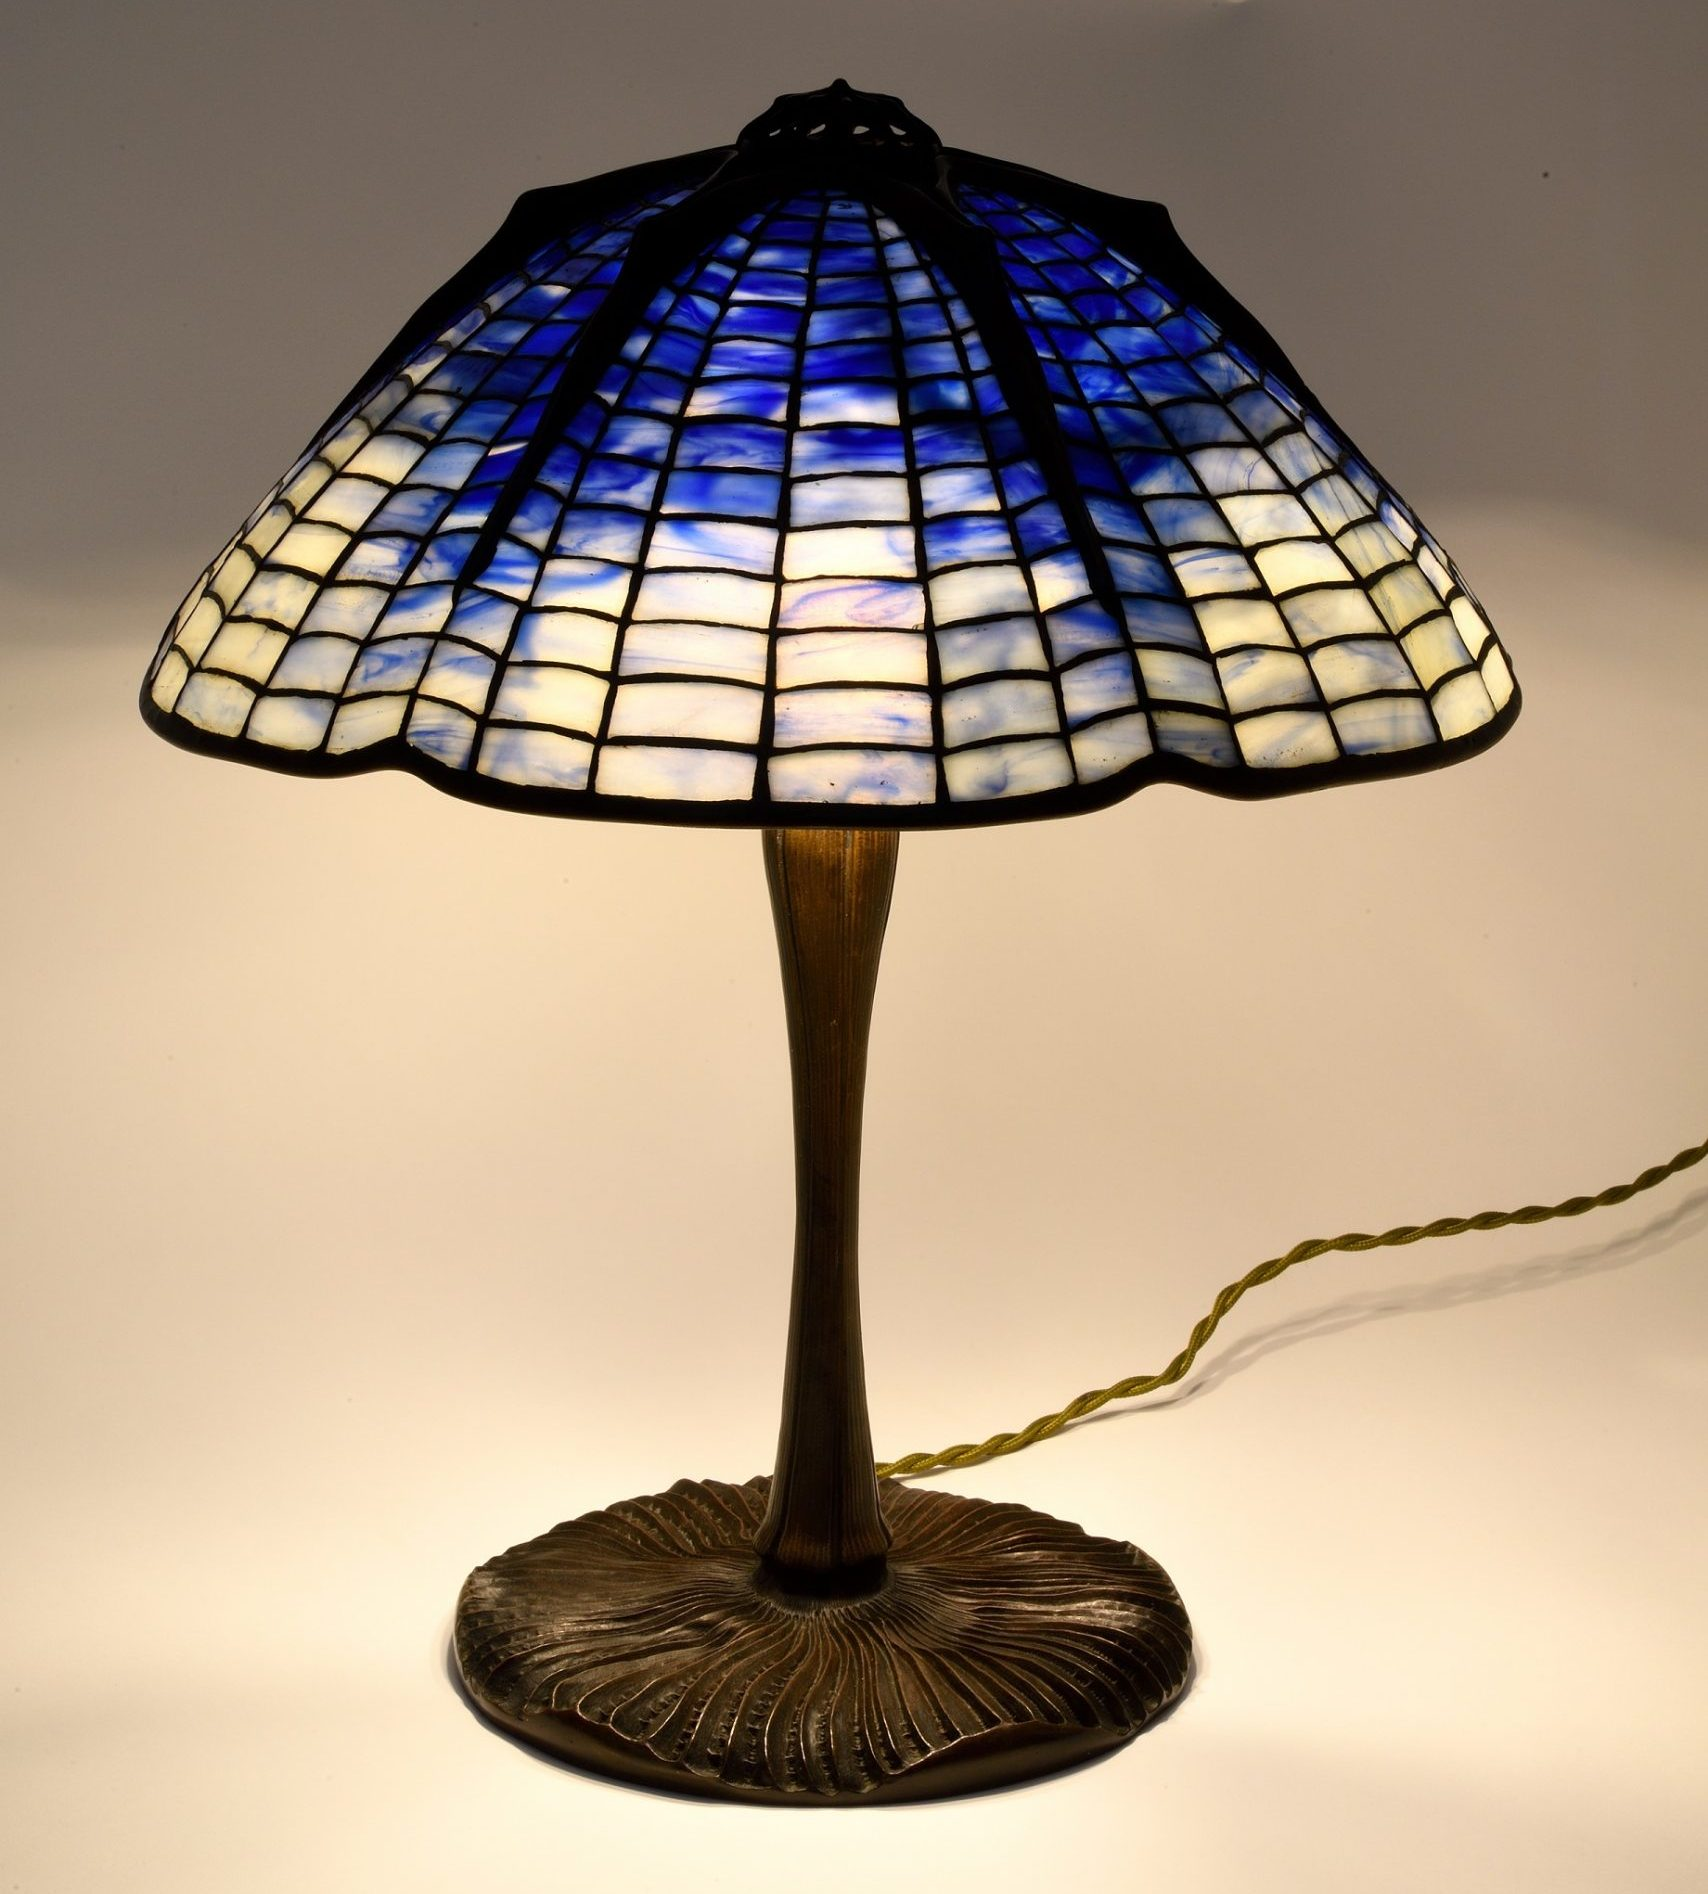 Tiffany lamp with an upturned mushroom base and blue spiderweb design lampshade